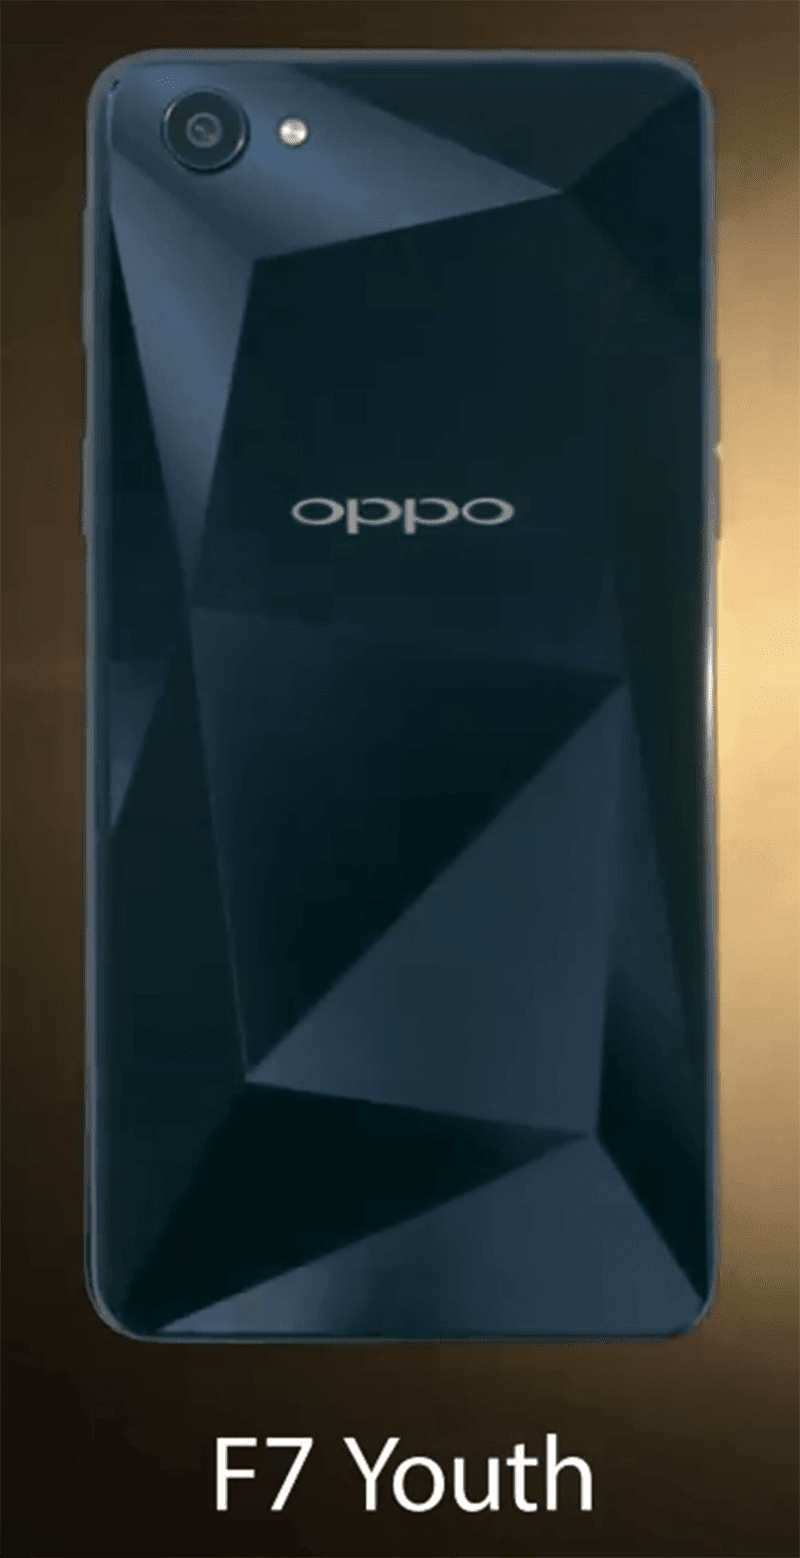 OPPO F7 Youth with Diamond Black color teased!